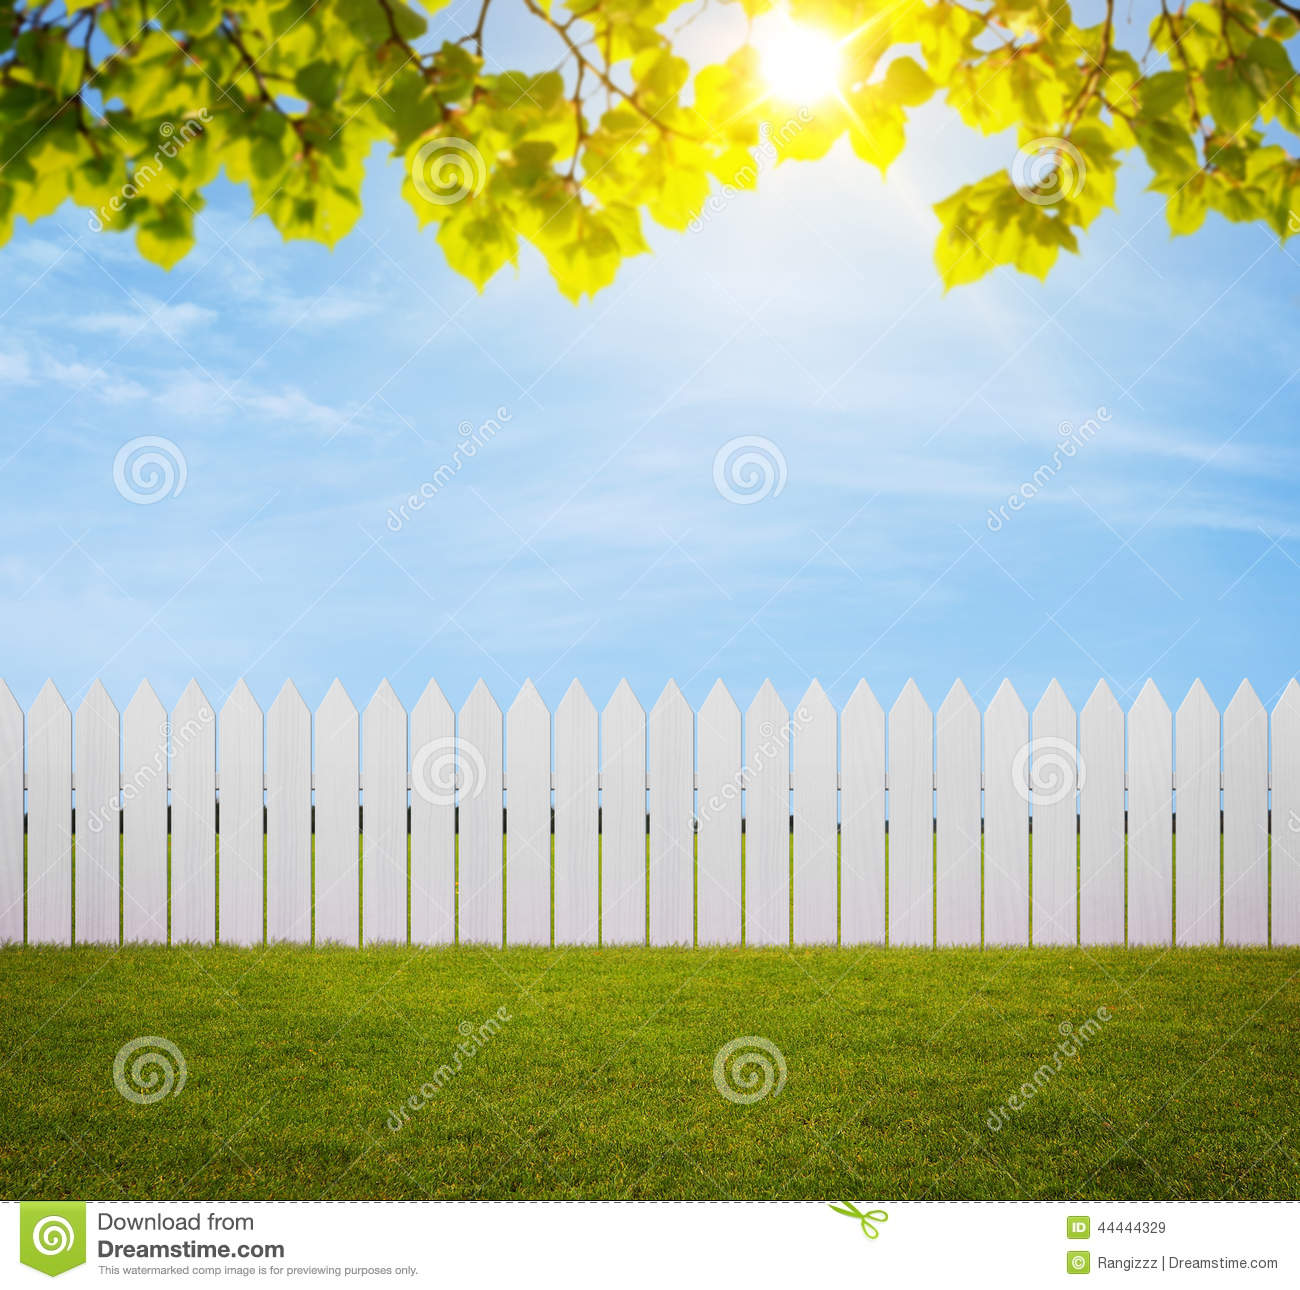 Backyard Background Images : Close up of white wooden fence in the back yard with copy space